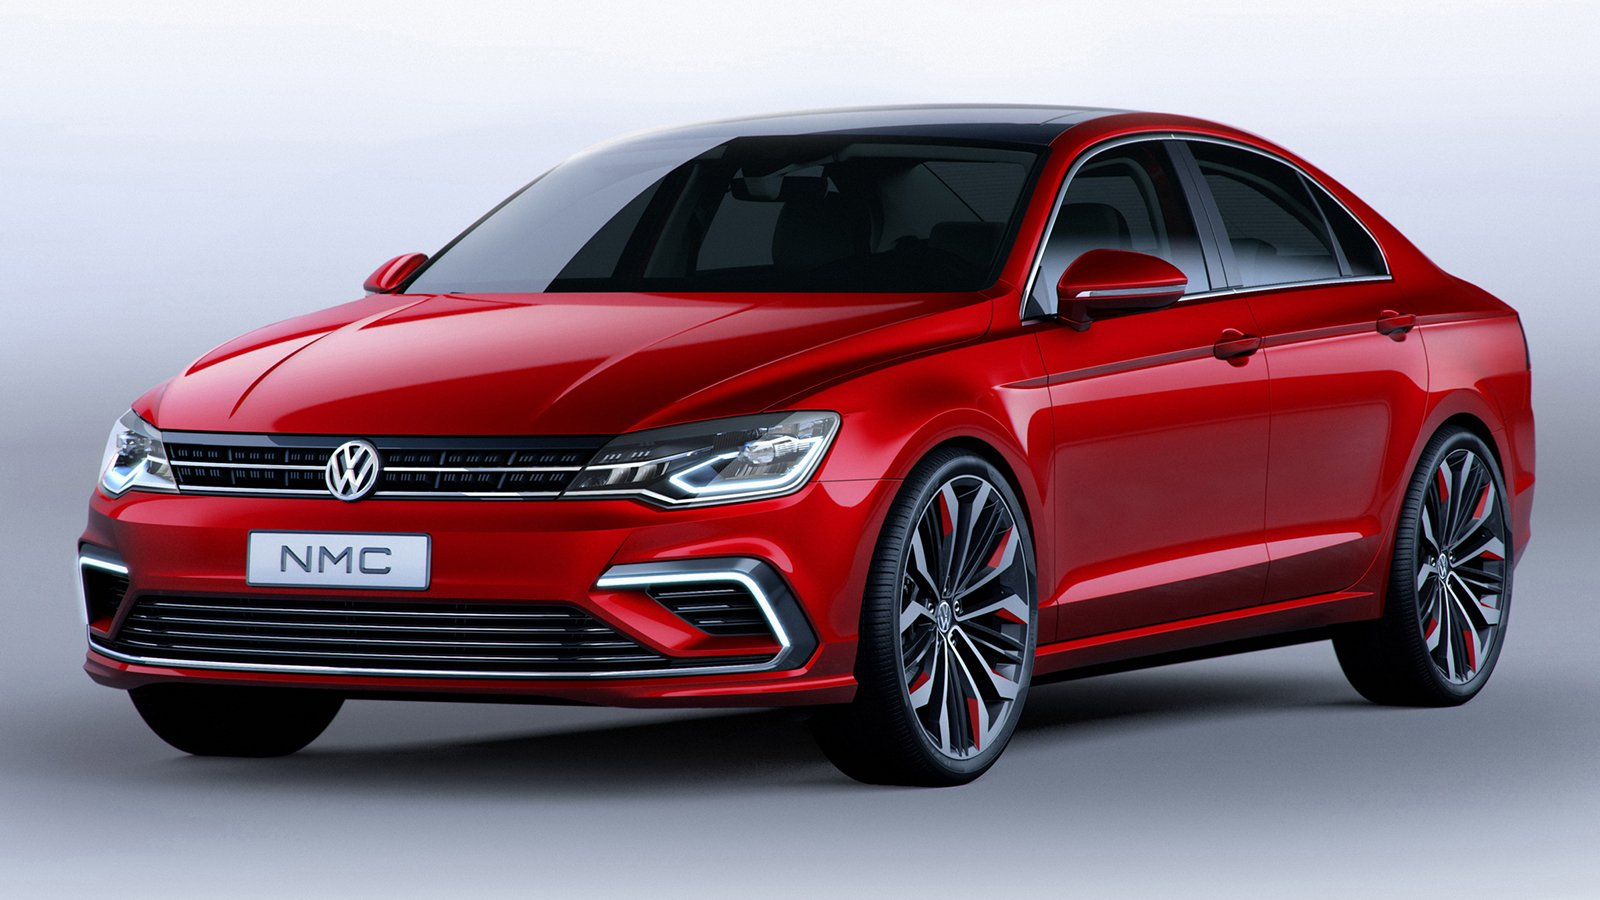 volkswagen_new_midsize_coupe_concept_3